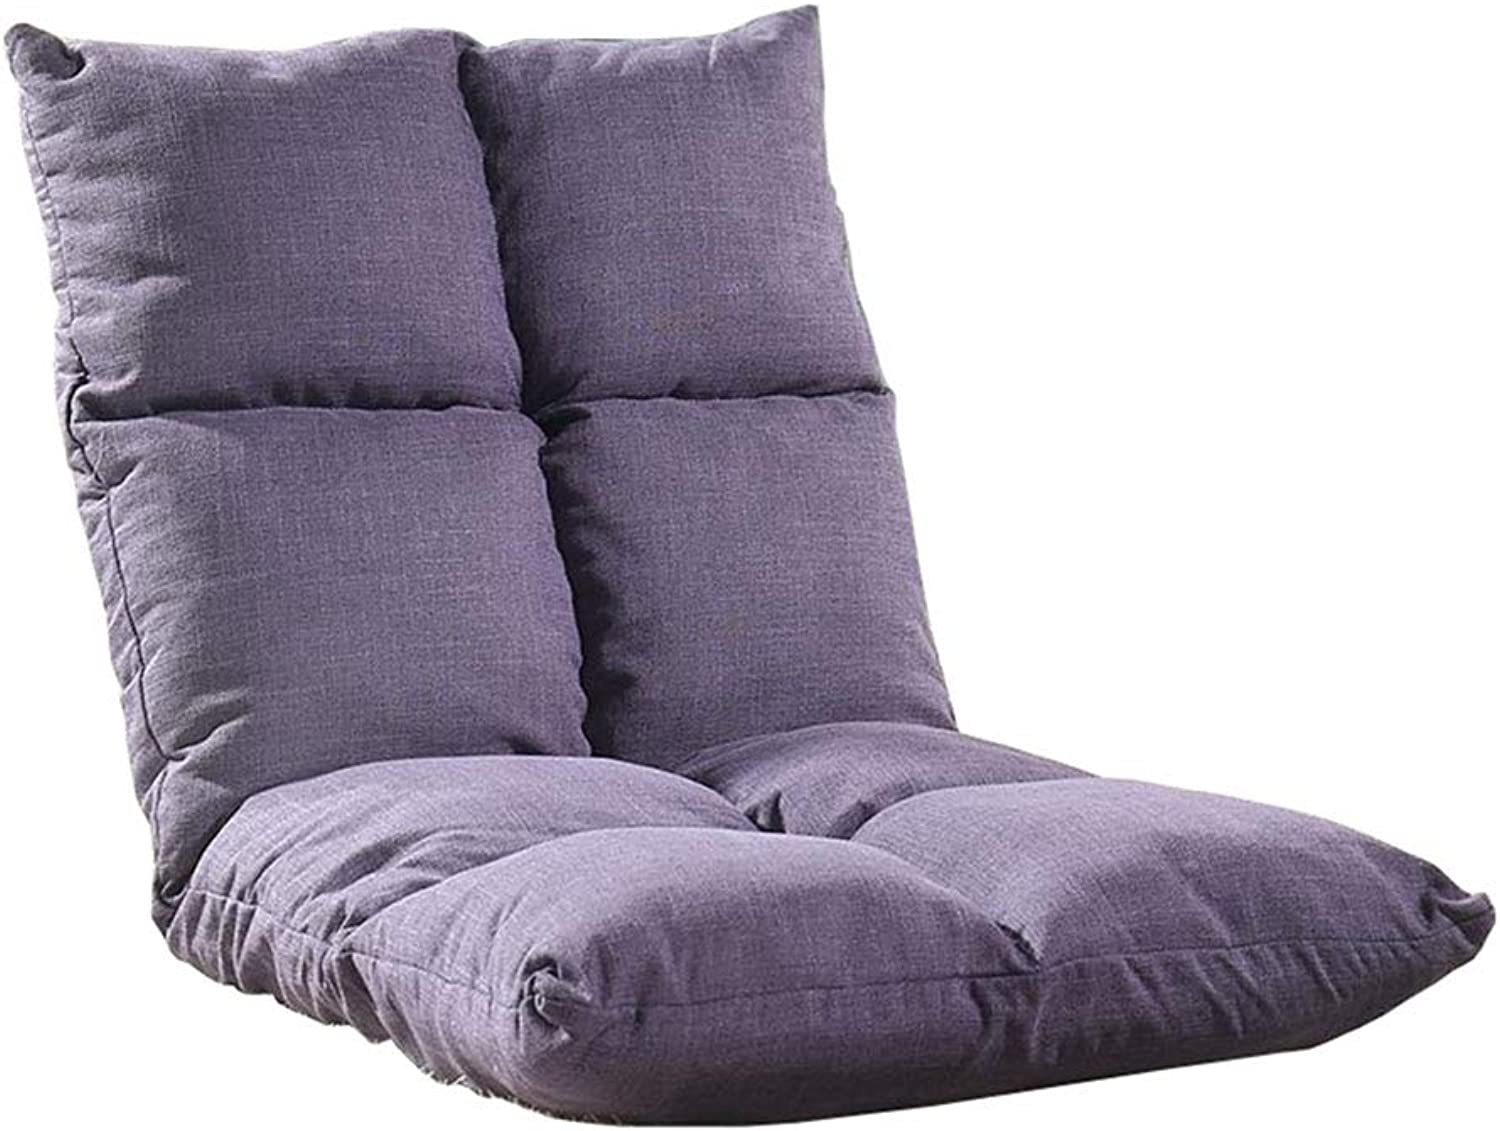 Foldable Floor Chair Adjustable Lazy Lounge Sofa Gaming Couch Backrest Home Meditation (Purple)